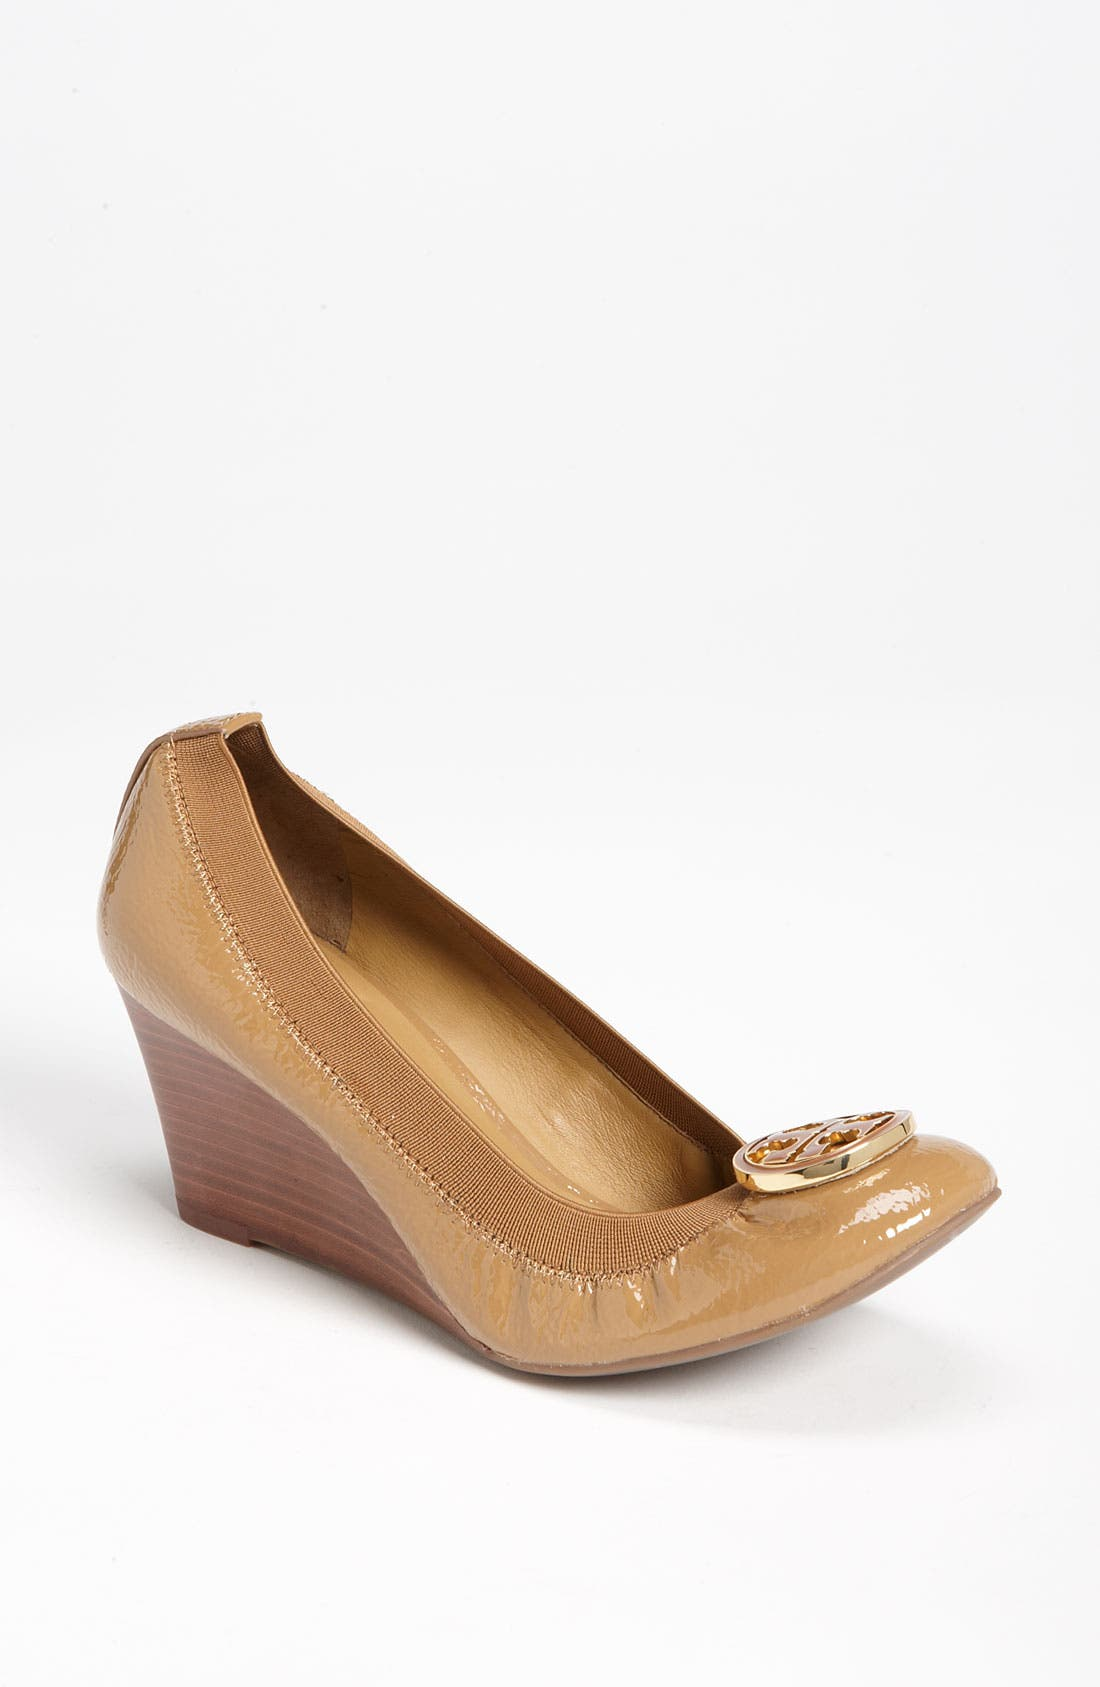 Main Image - Tory Burch 'Caroline' Wedge